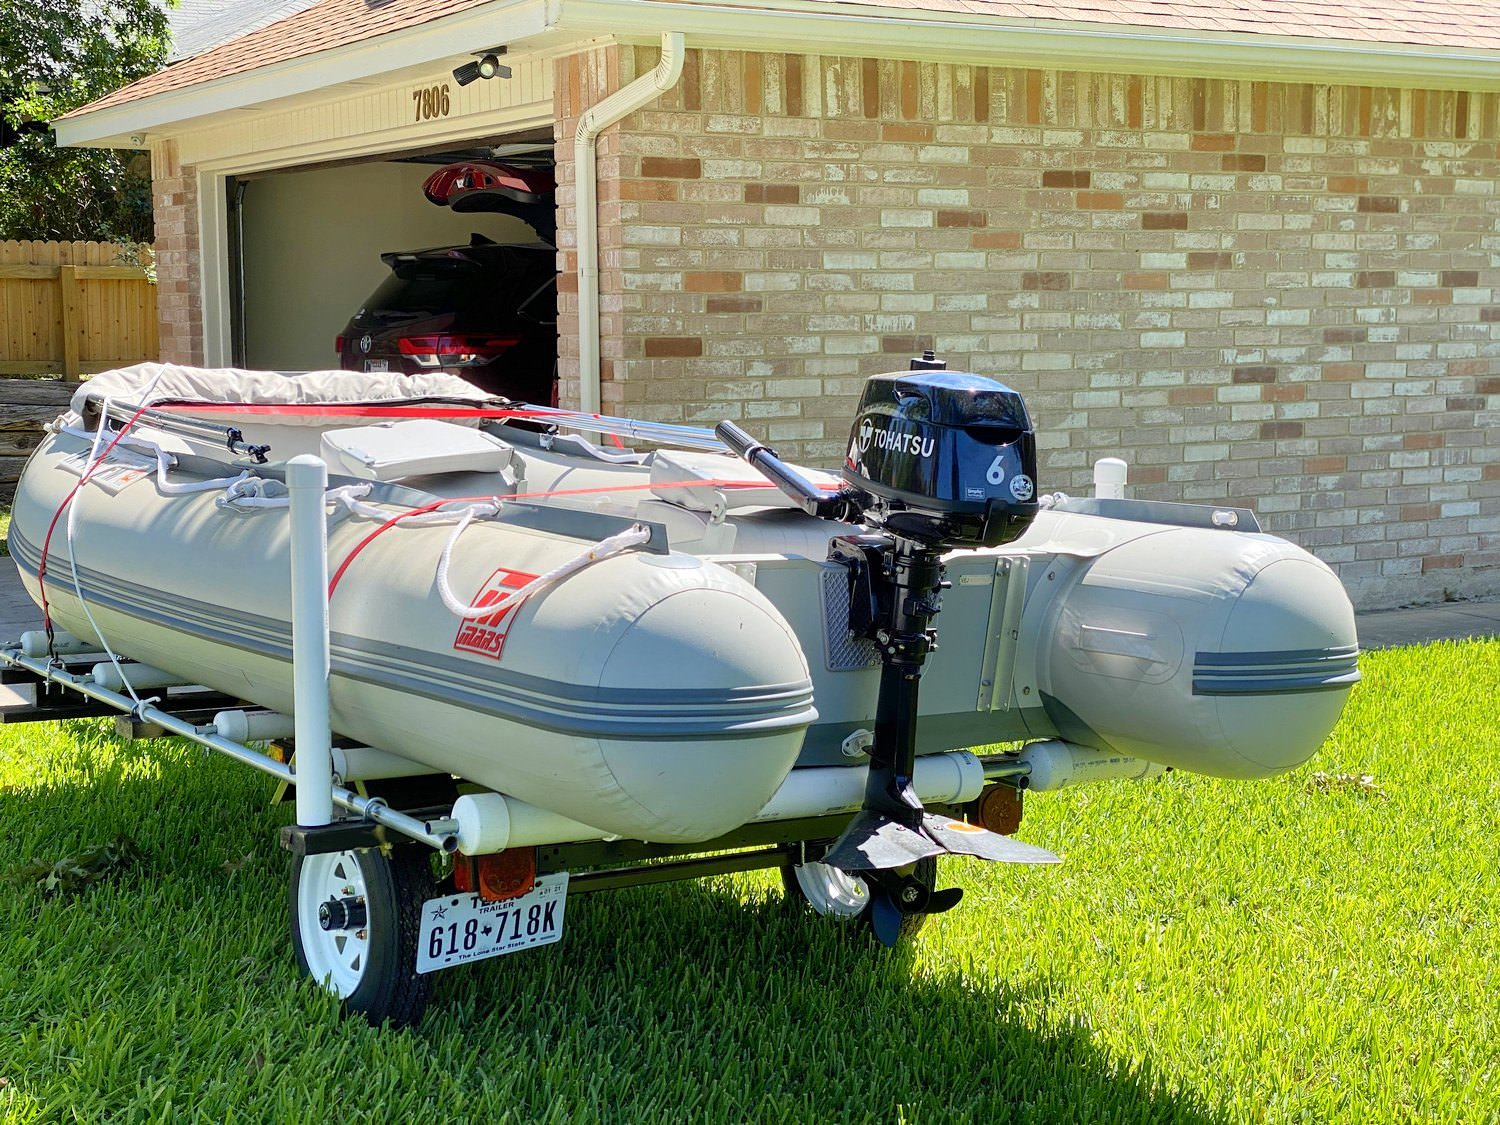 Mars inflatable boat PSM365 on DIY modified small trailer